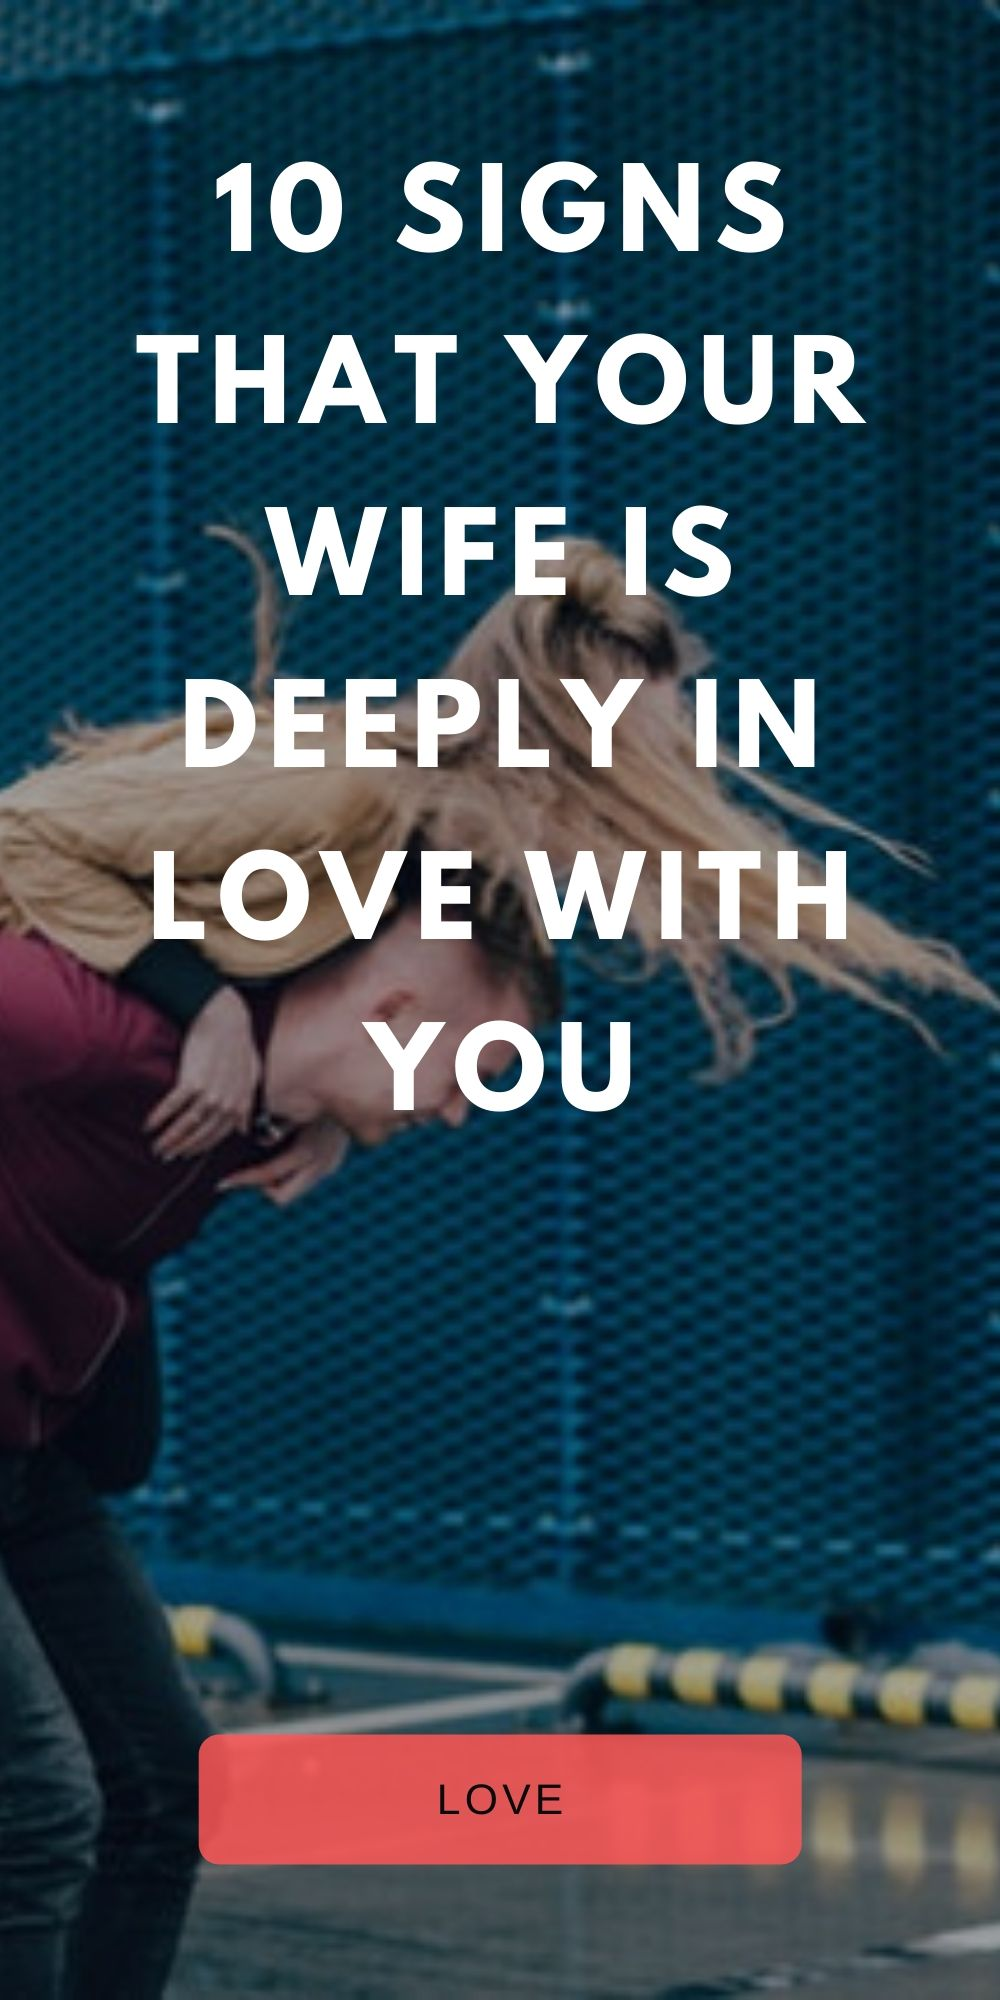 10 signs that your wife is deeply in love with you - Live